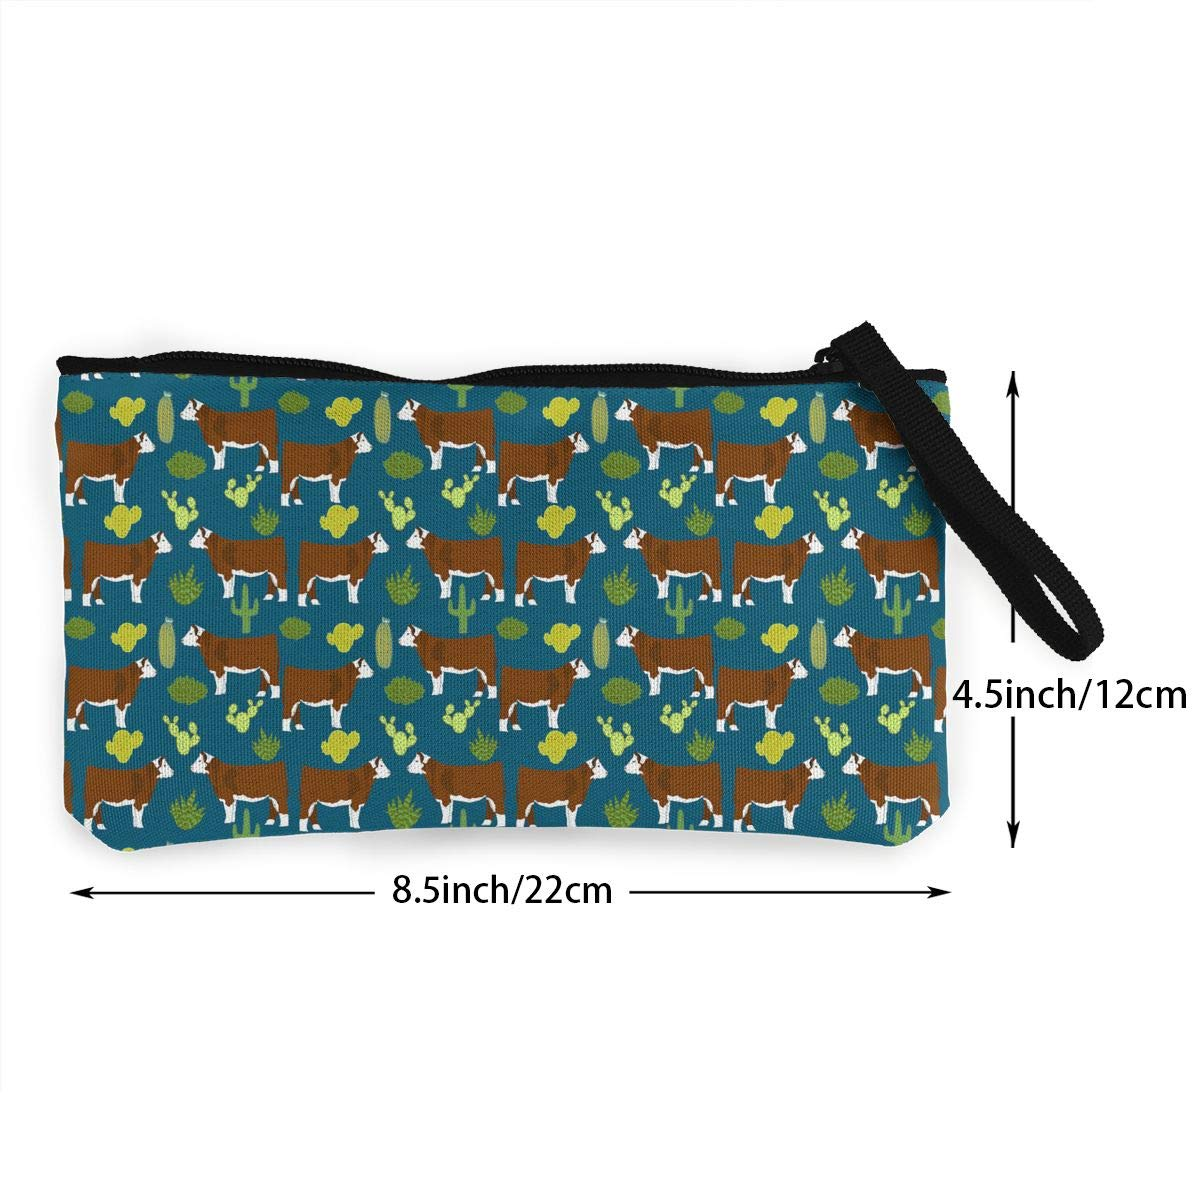 DH14hjsdDEE Hereford Cow Cattle And Cactus Zipper Canvas Coin Purse Wallet Make Up Bag Cellphone Bag With Handle